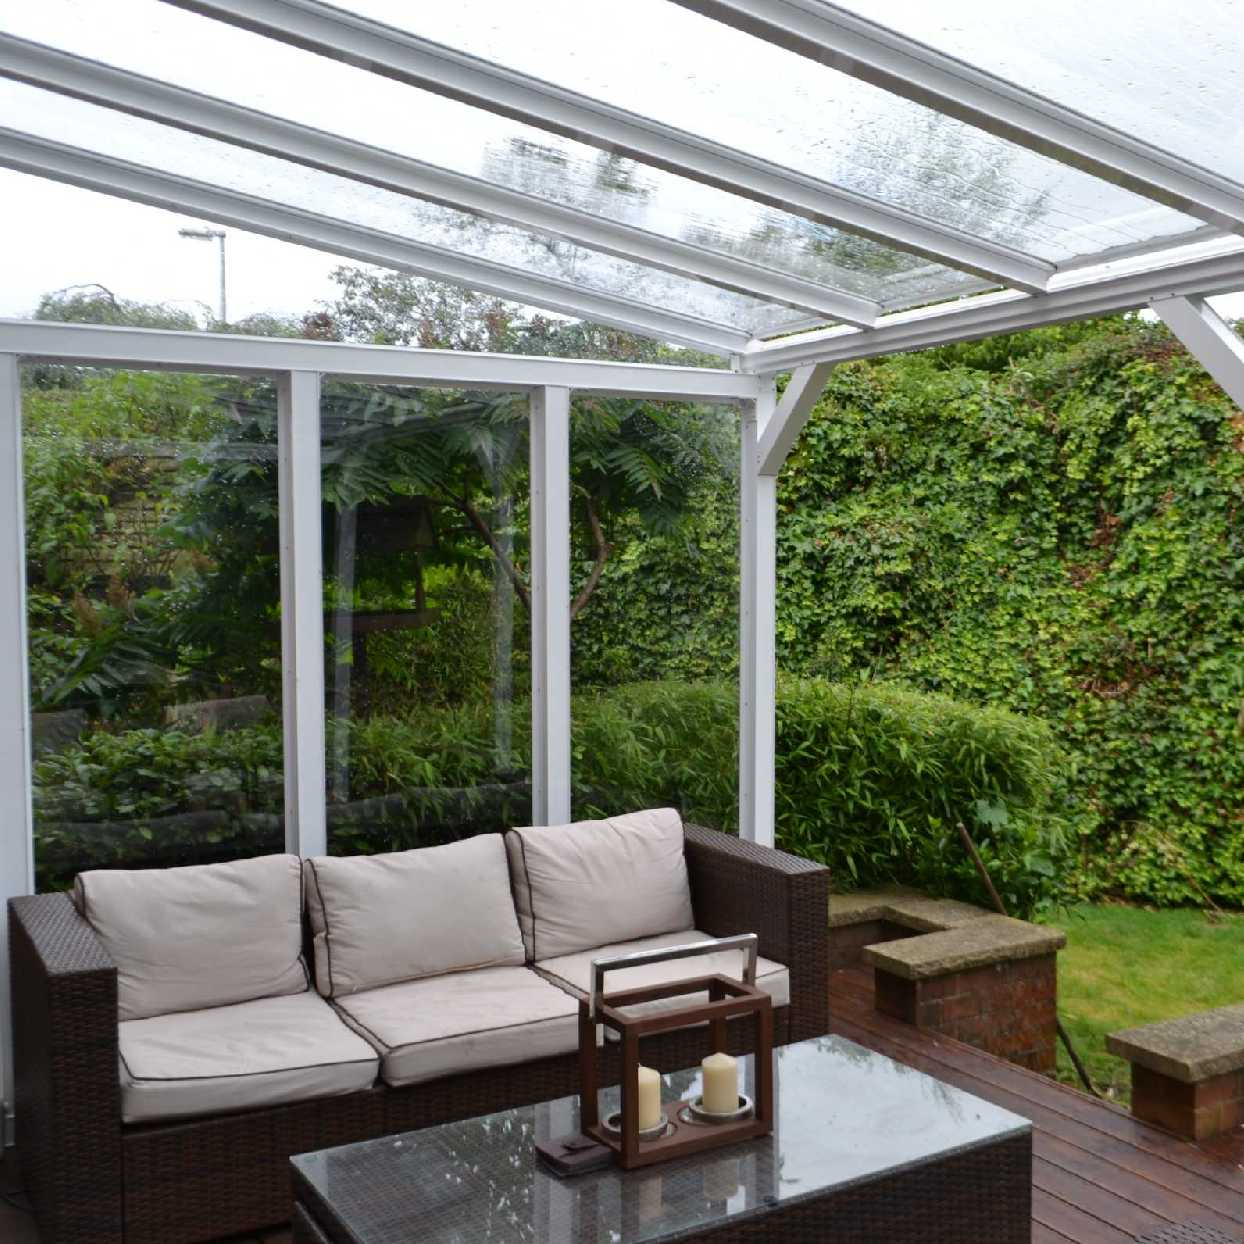 Great selection of Omega Smart Lean-To Canopy with 16mm Polycarbonate Glazing - 9.5m (W) x 2.0m (P), (5) Supporting Posts